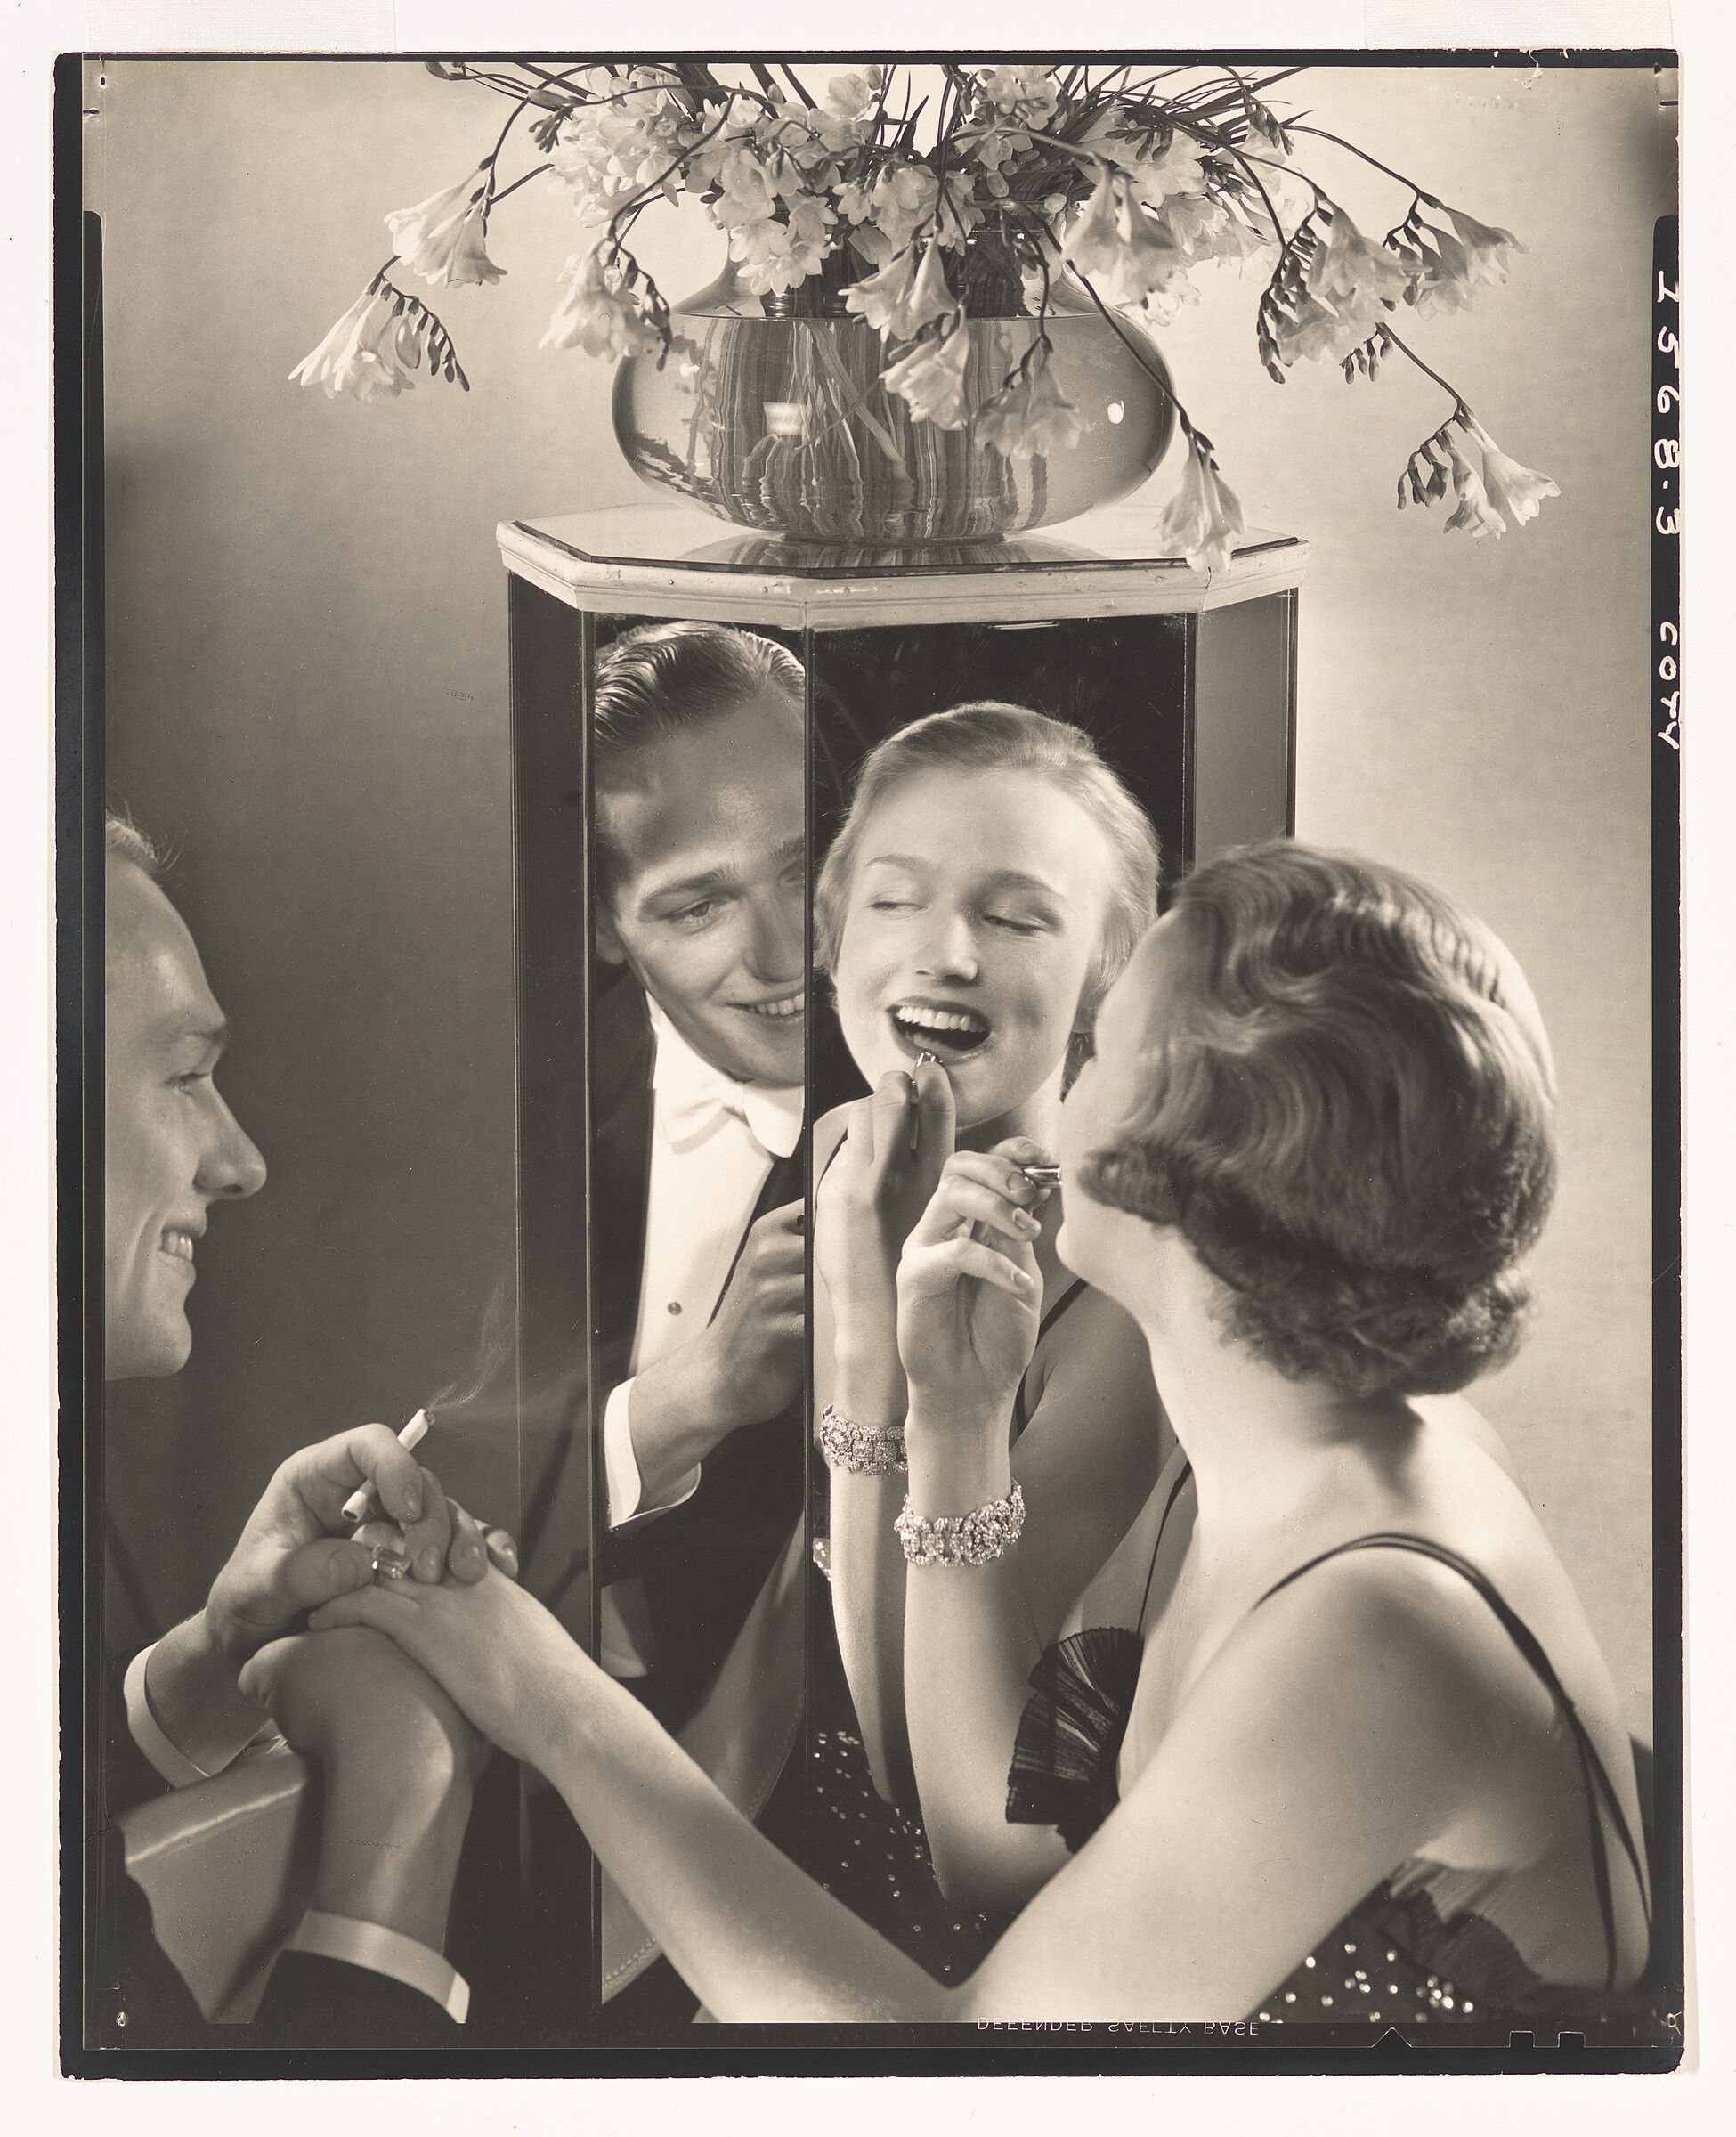 Woman applying make up in mirror with man near in black and white photo.